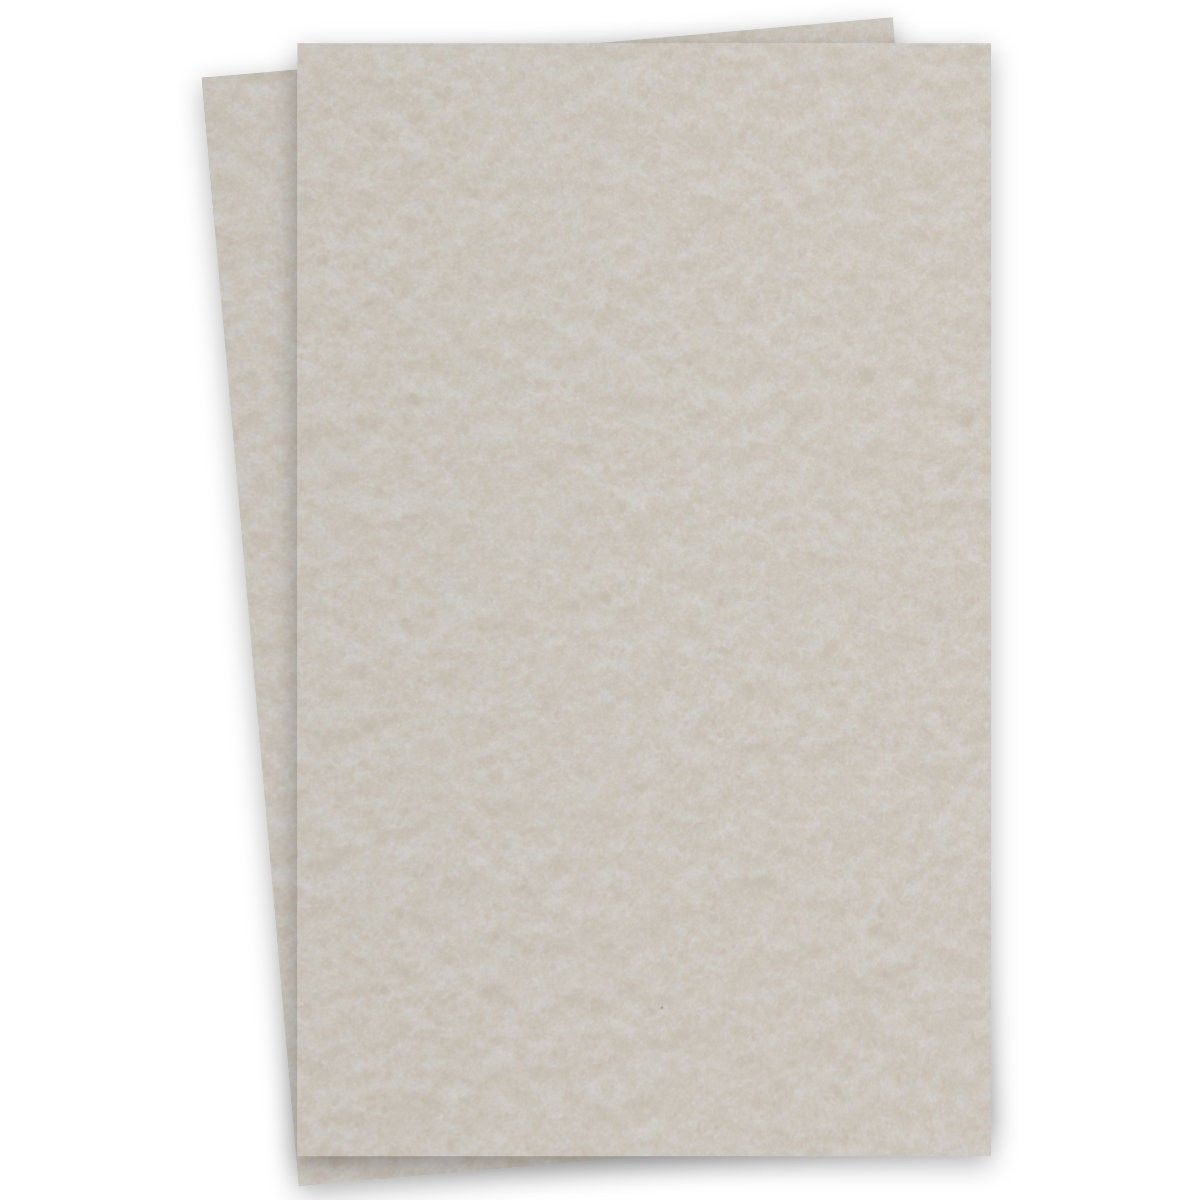 Parchtone Aged 11 X 17 Parchment Card Stock 80lb Cover 125 Pk In 2021 How To Age Paper Parchment Cards Paper